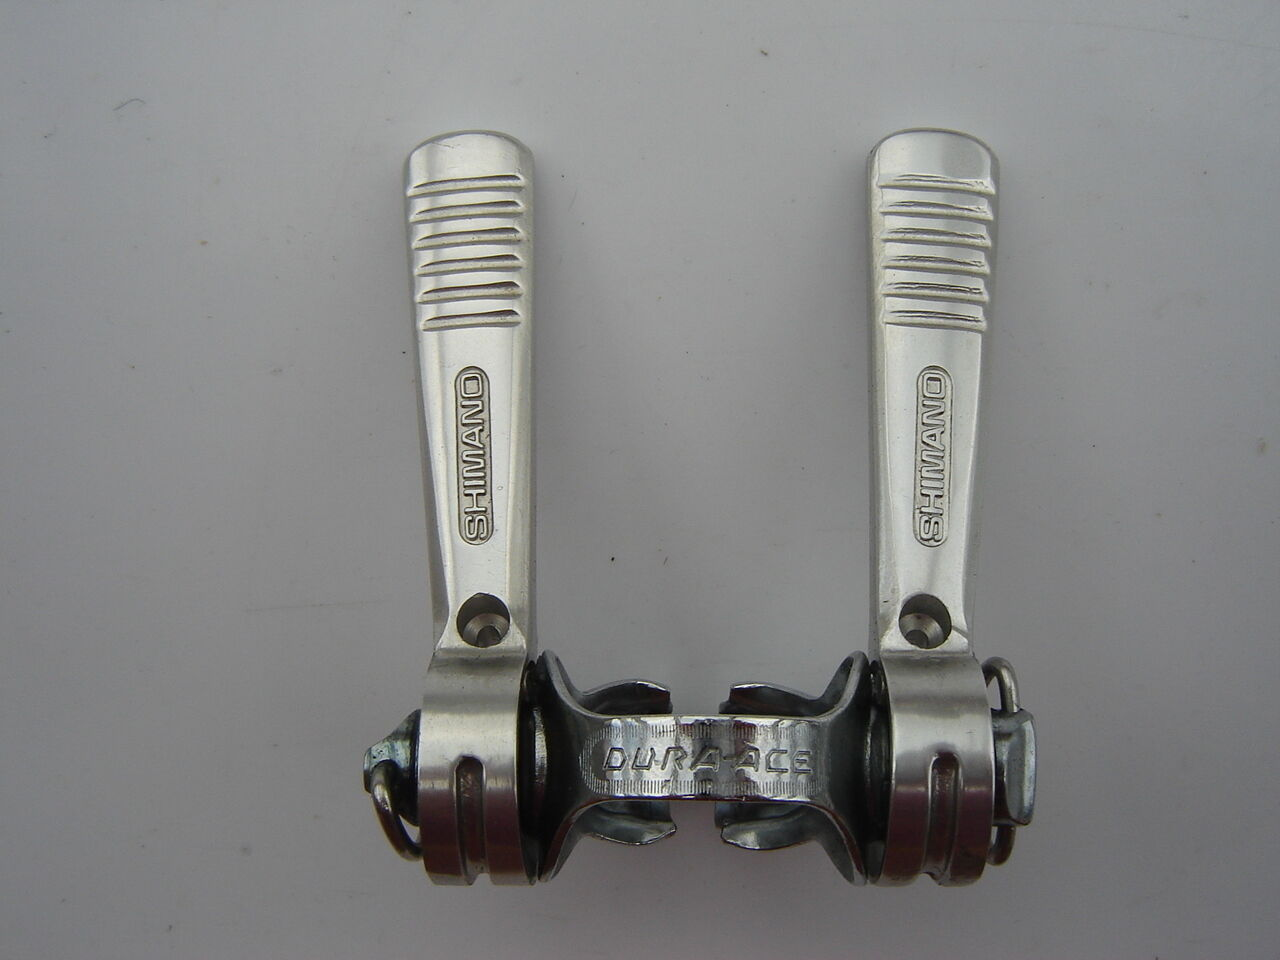 SHIMANO DURA ACE L-284   SL-101 FIRST GENERATION CLAMP-ON SHIFTING LEVERS - NOS